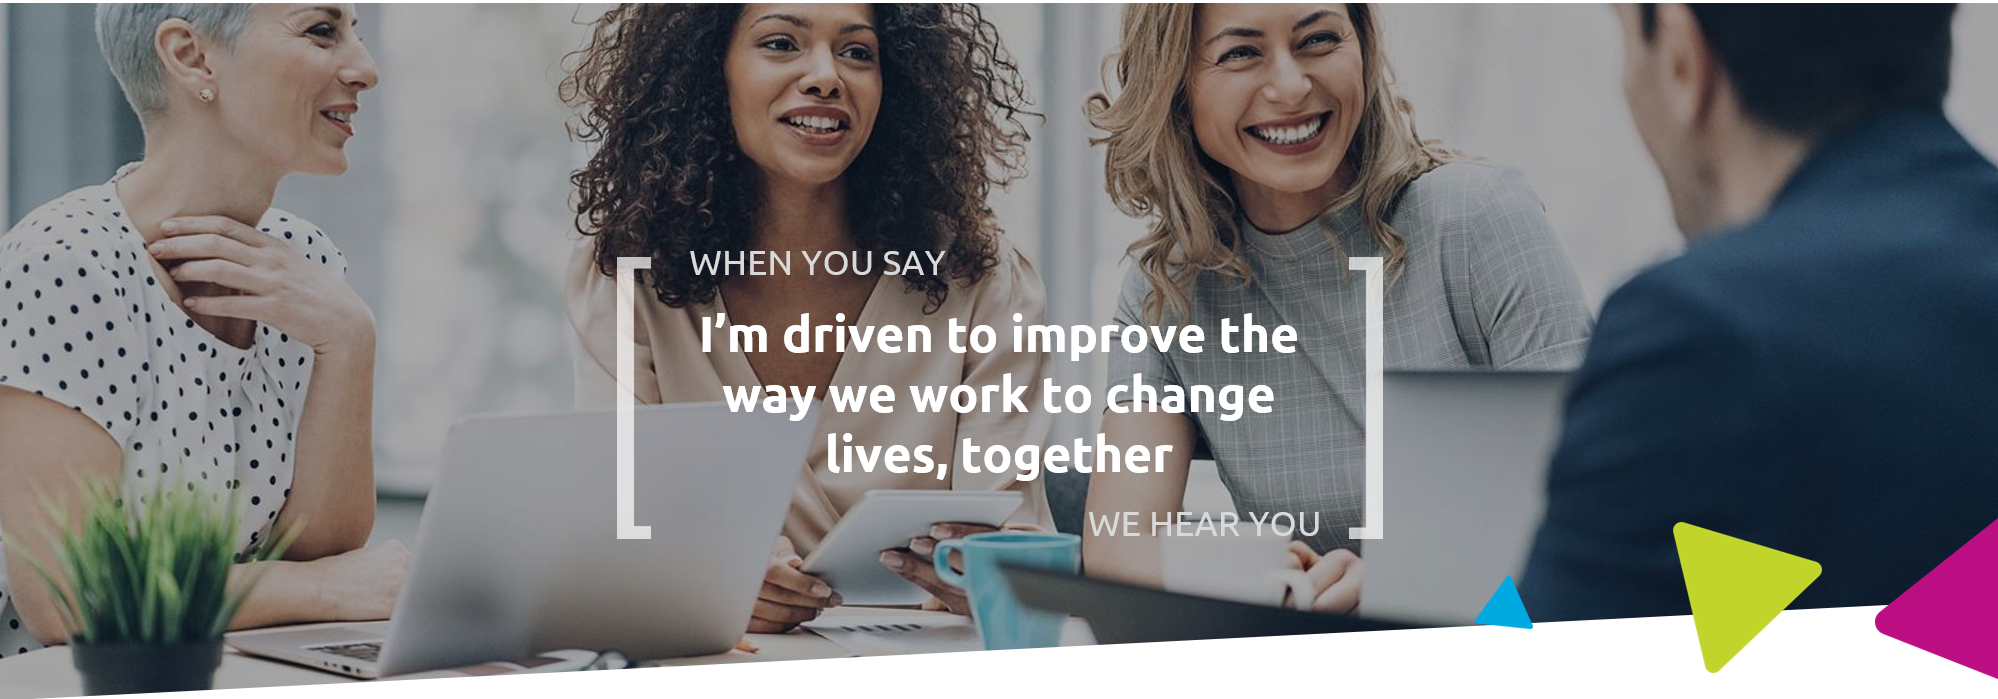 When you say I'm driven to improve the way we work to change lives, together we hear you